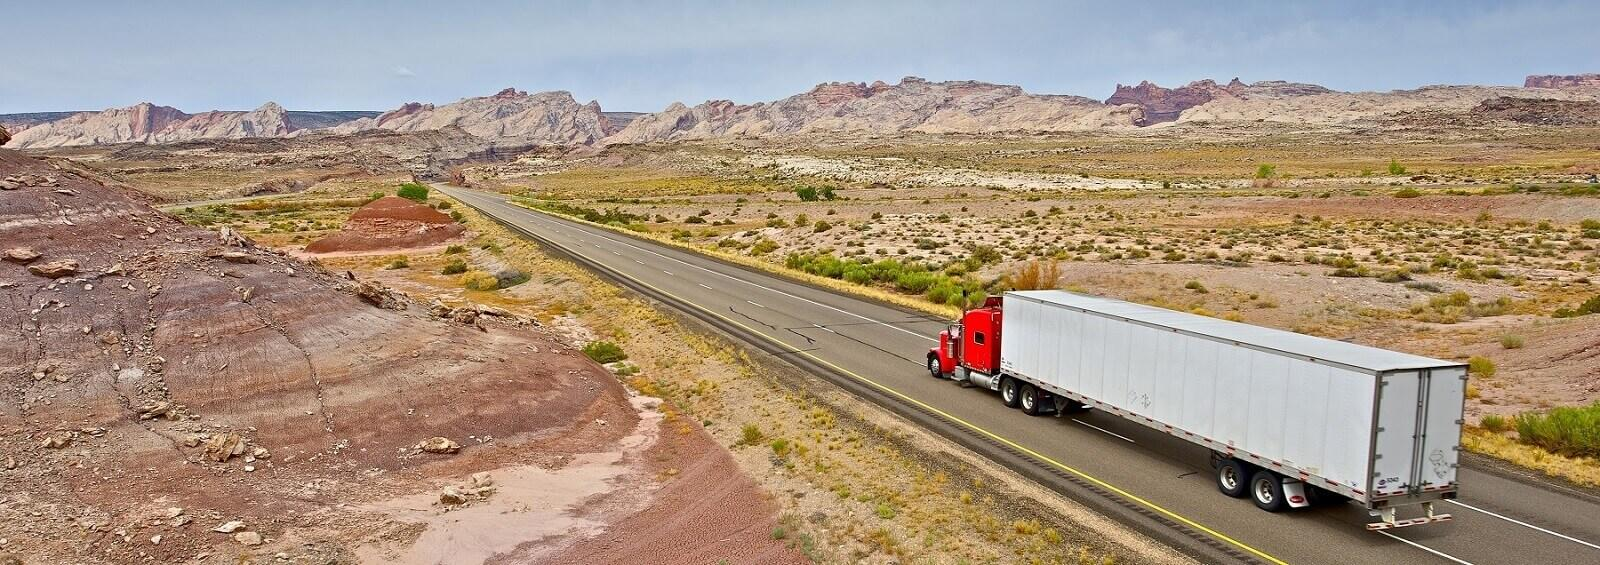 Hoefon Security Seals offers a wide range of security seals for trucks and trailers